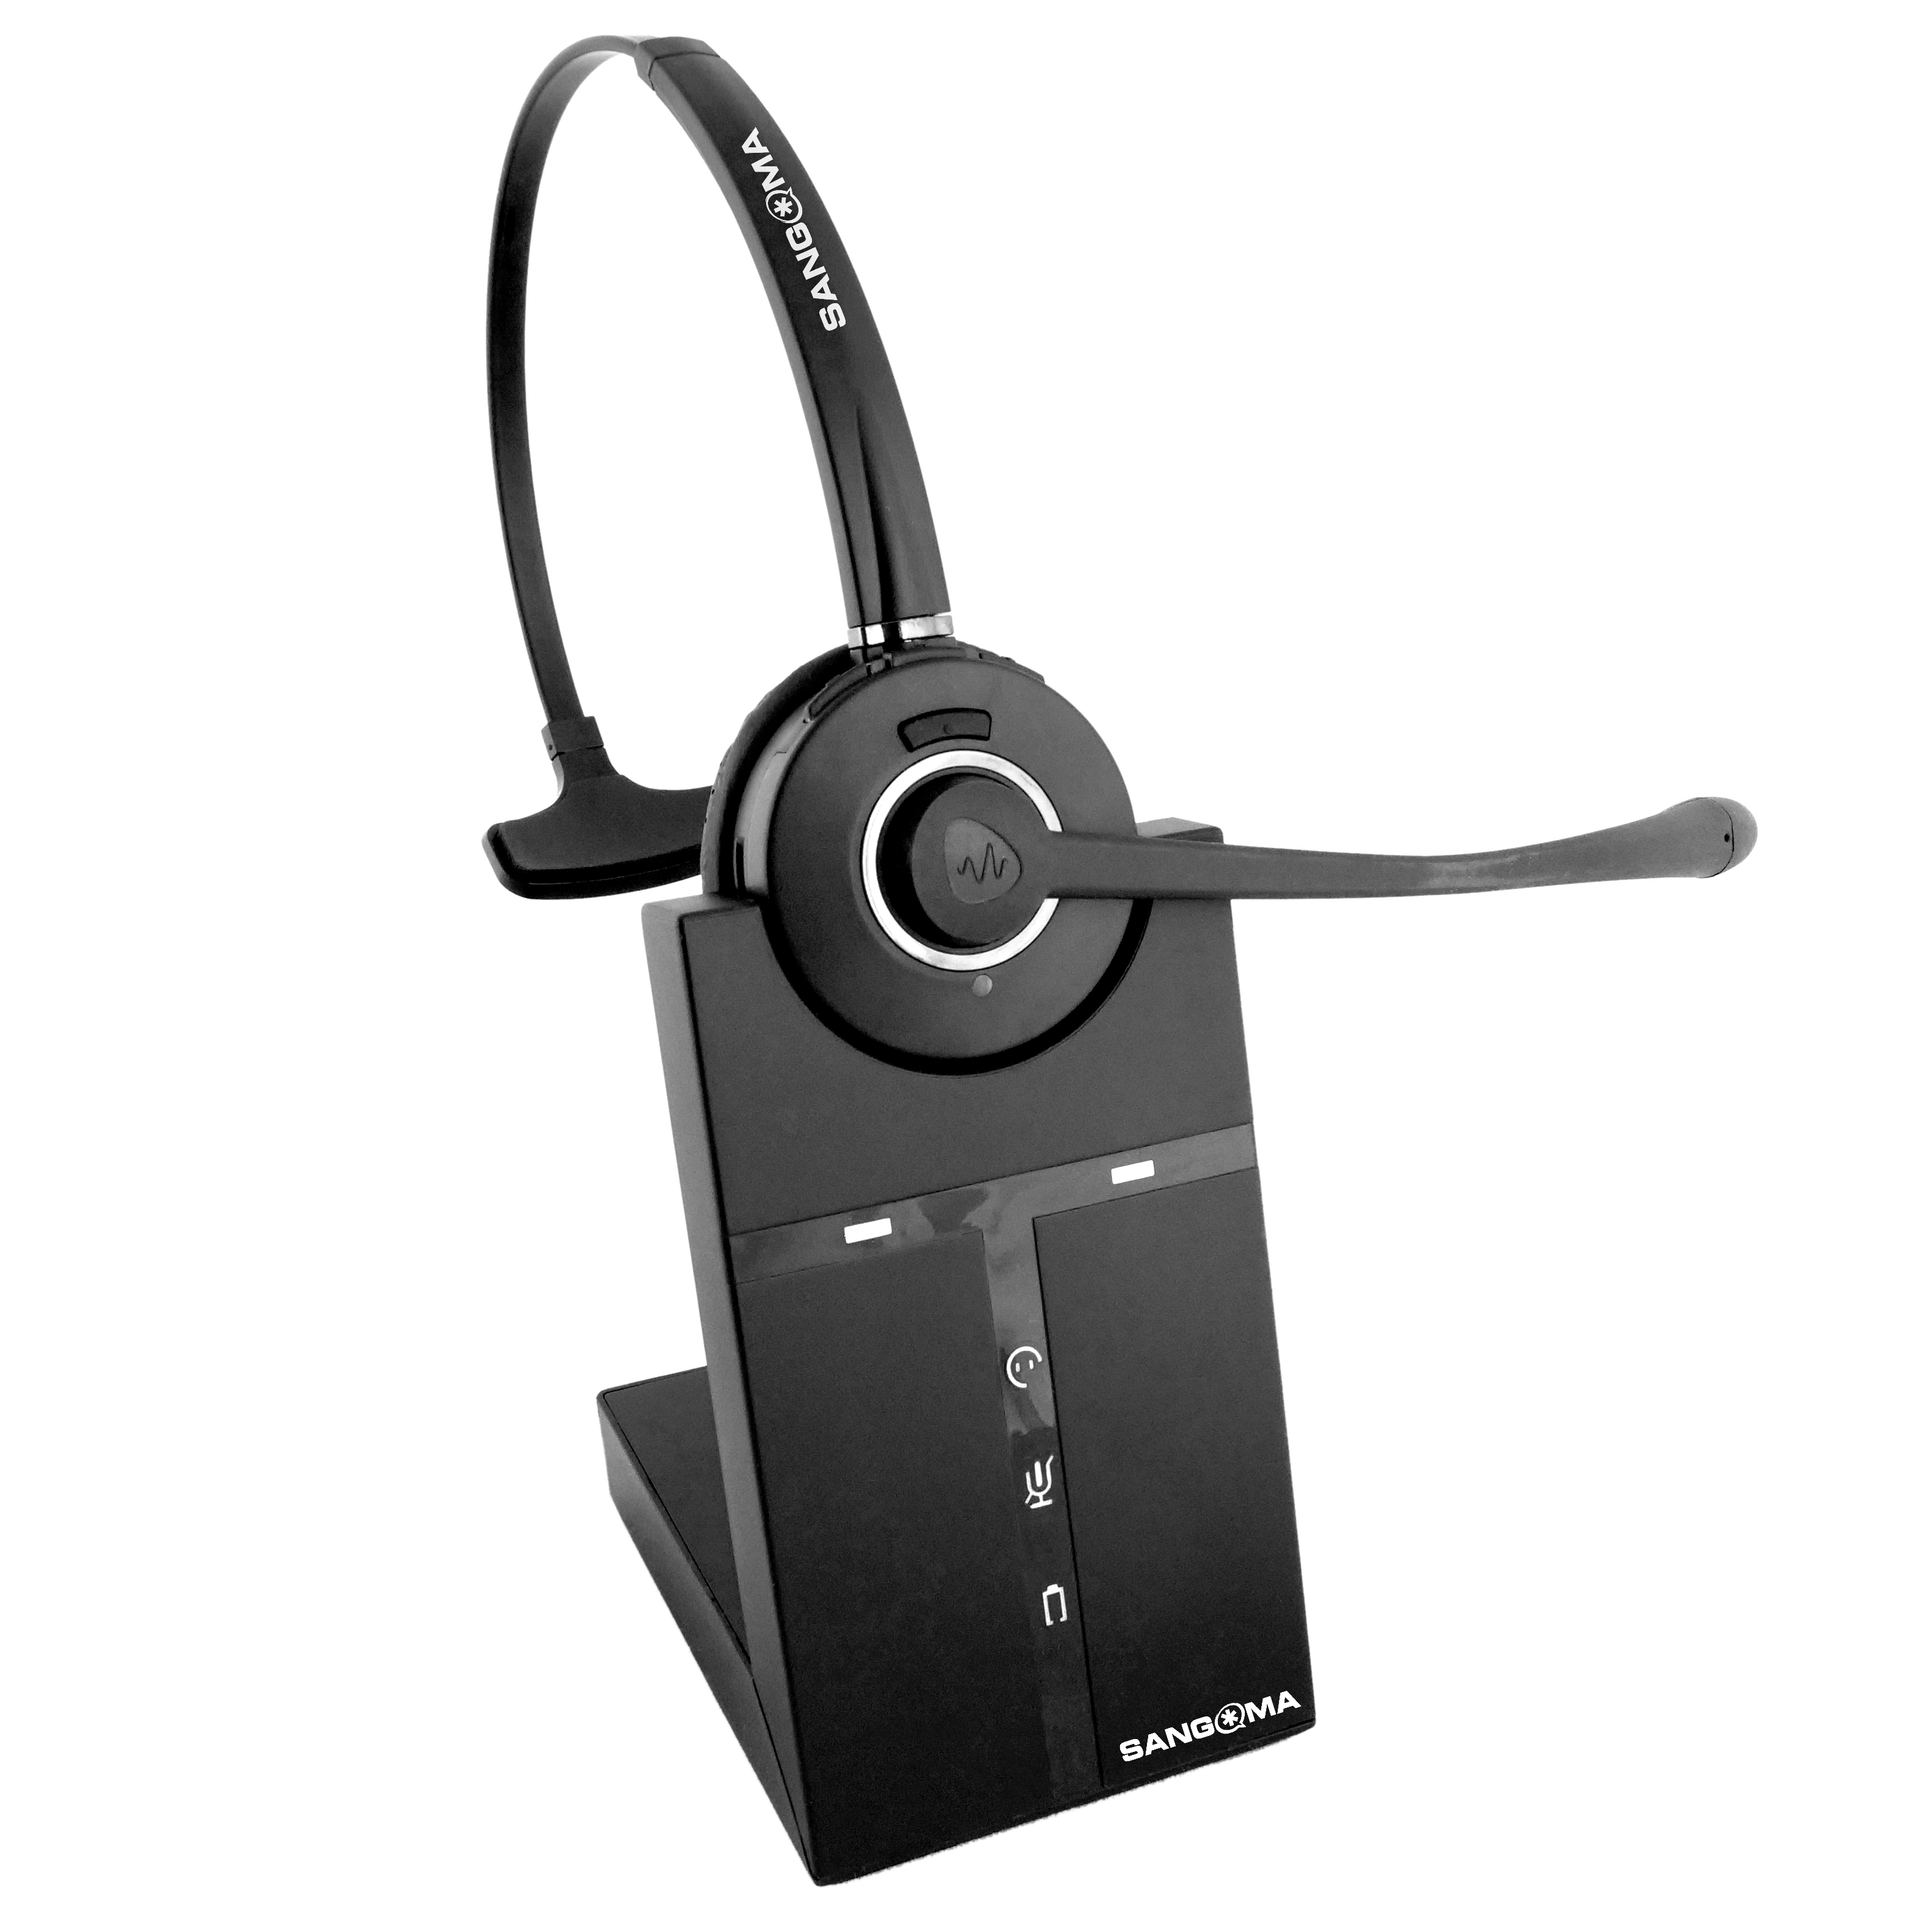 H10 headset on cradle base from the front